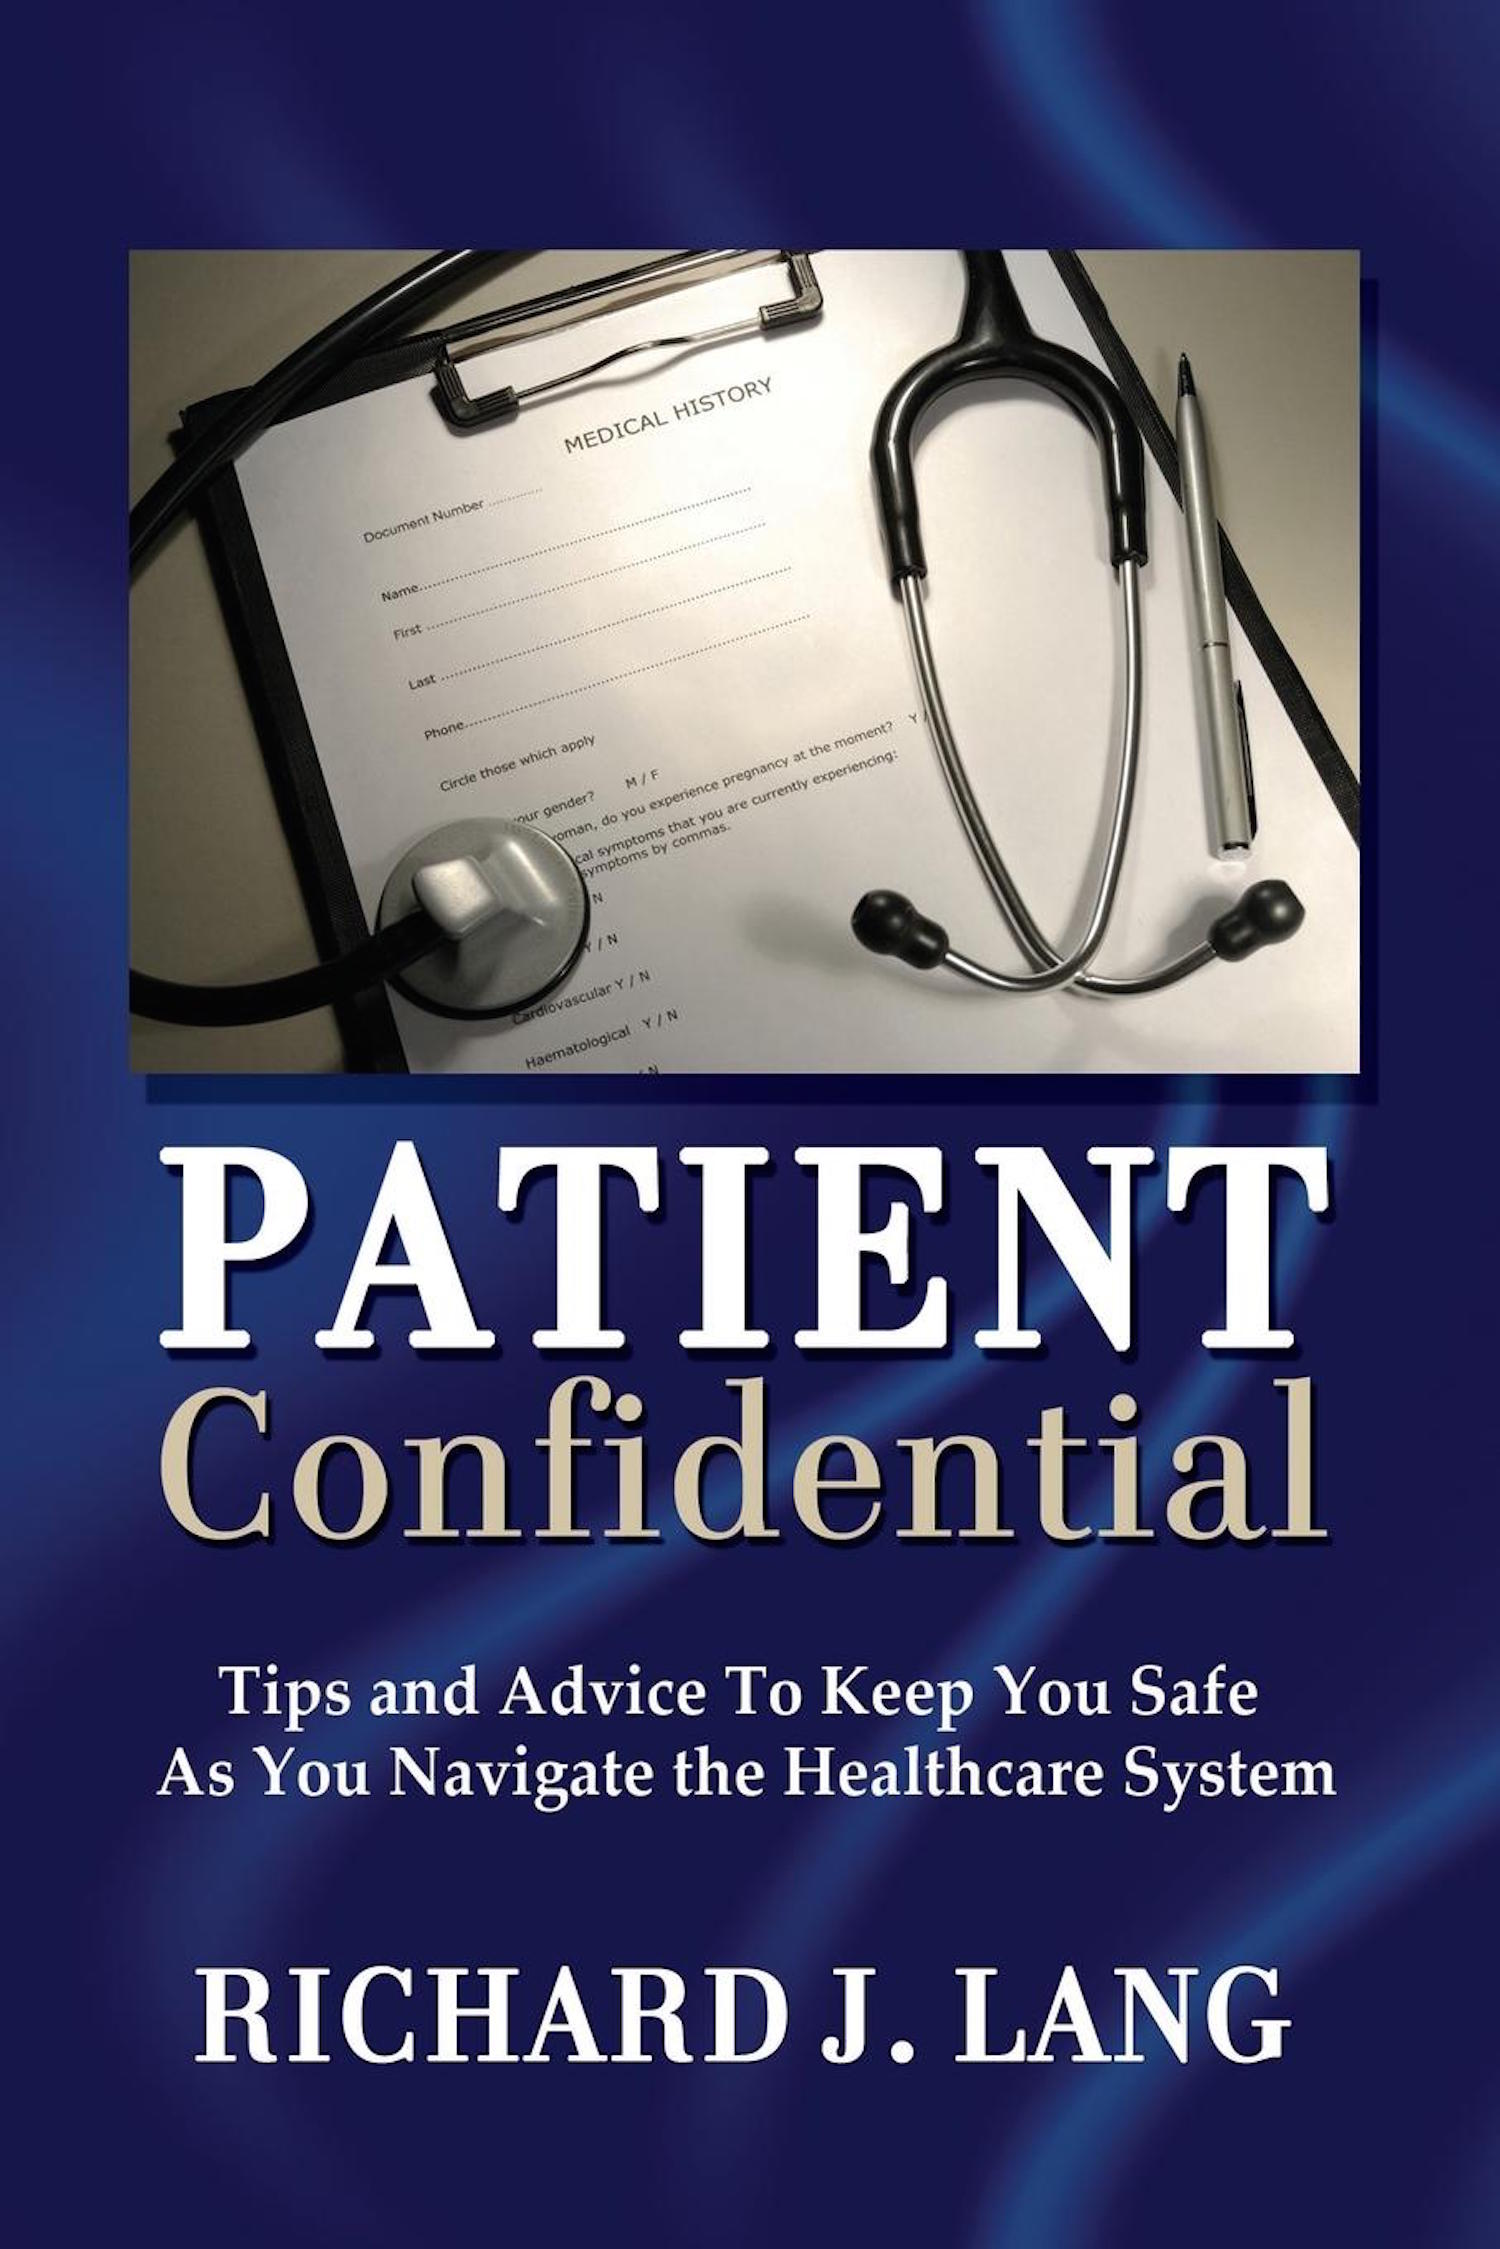 Patient Confidential: Tips and Advice to Keep You Safe As You Navigate the Healthcare System